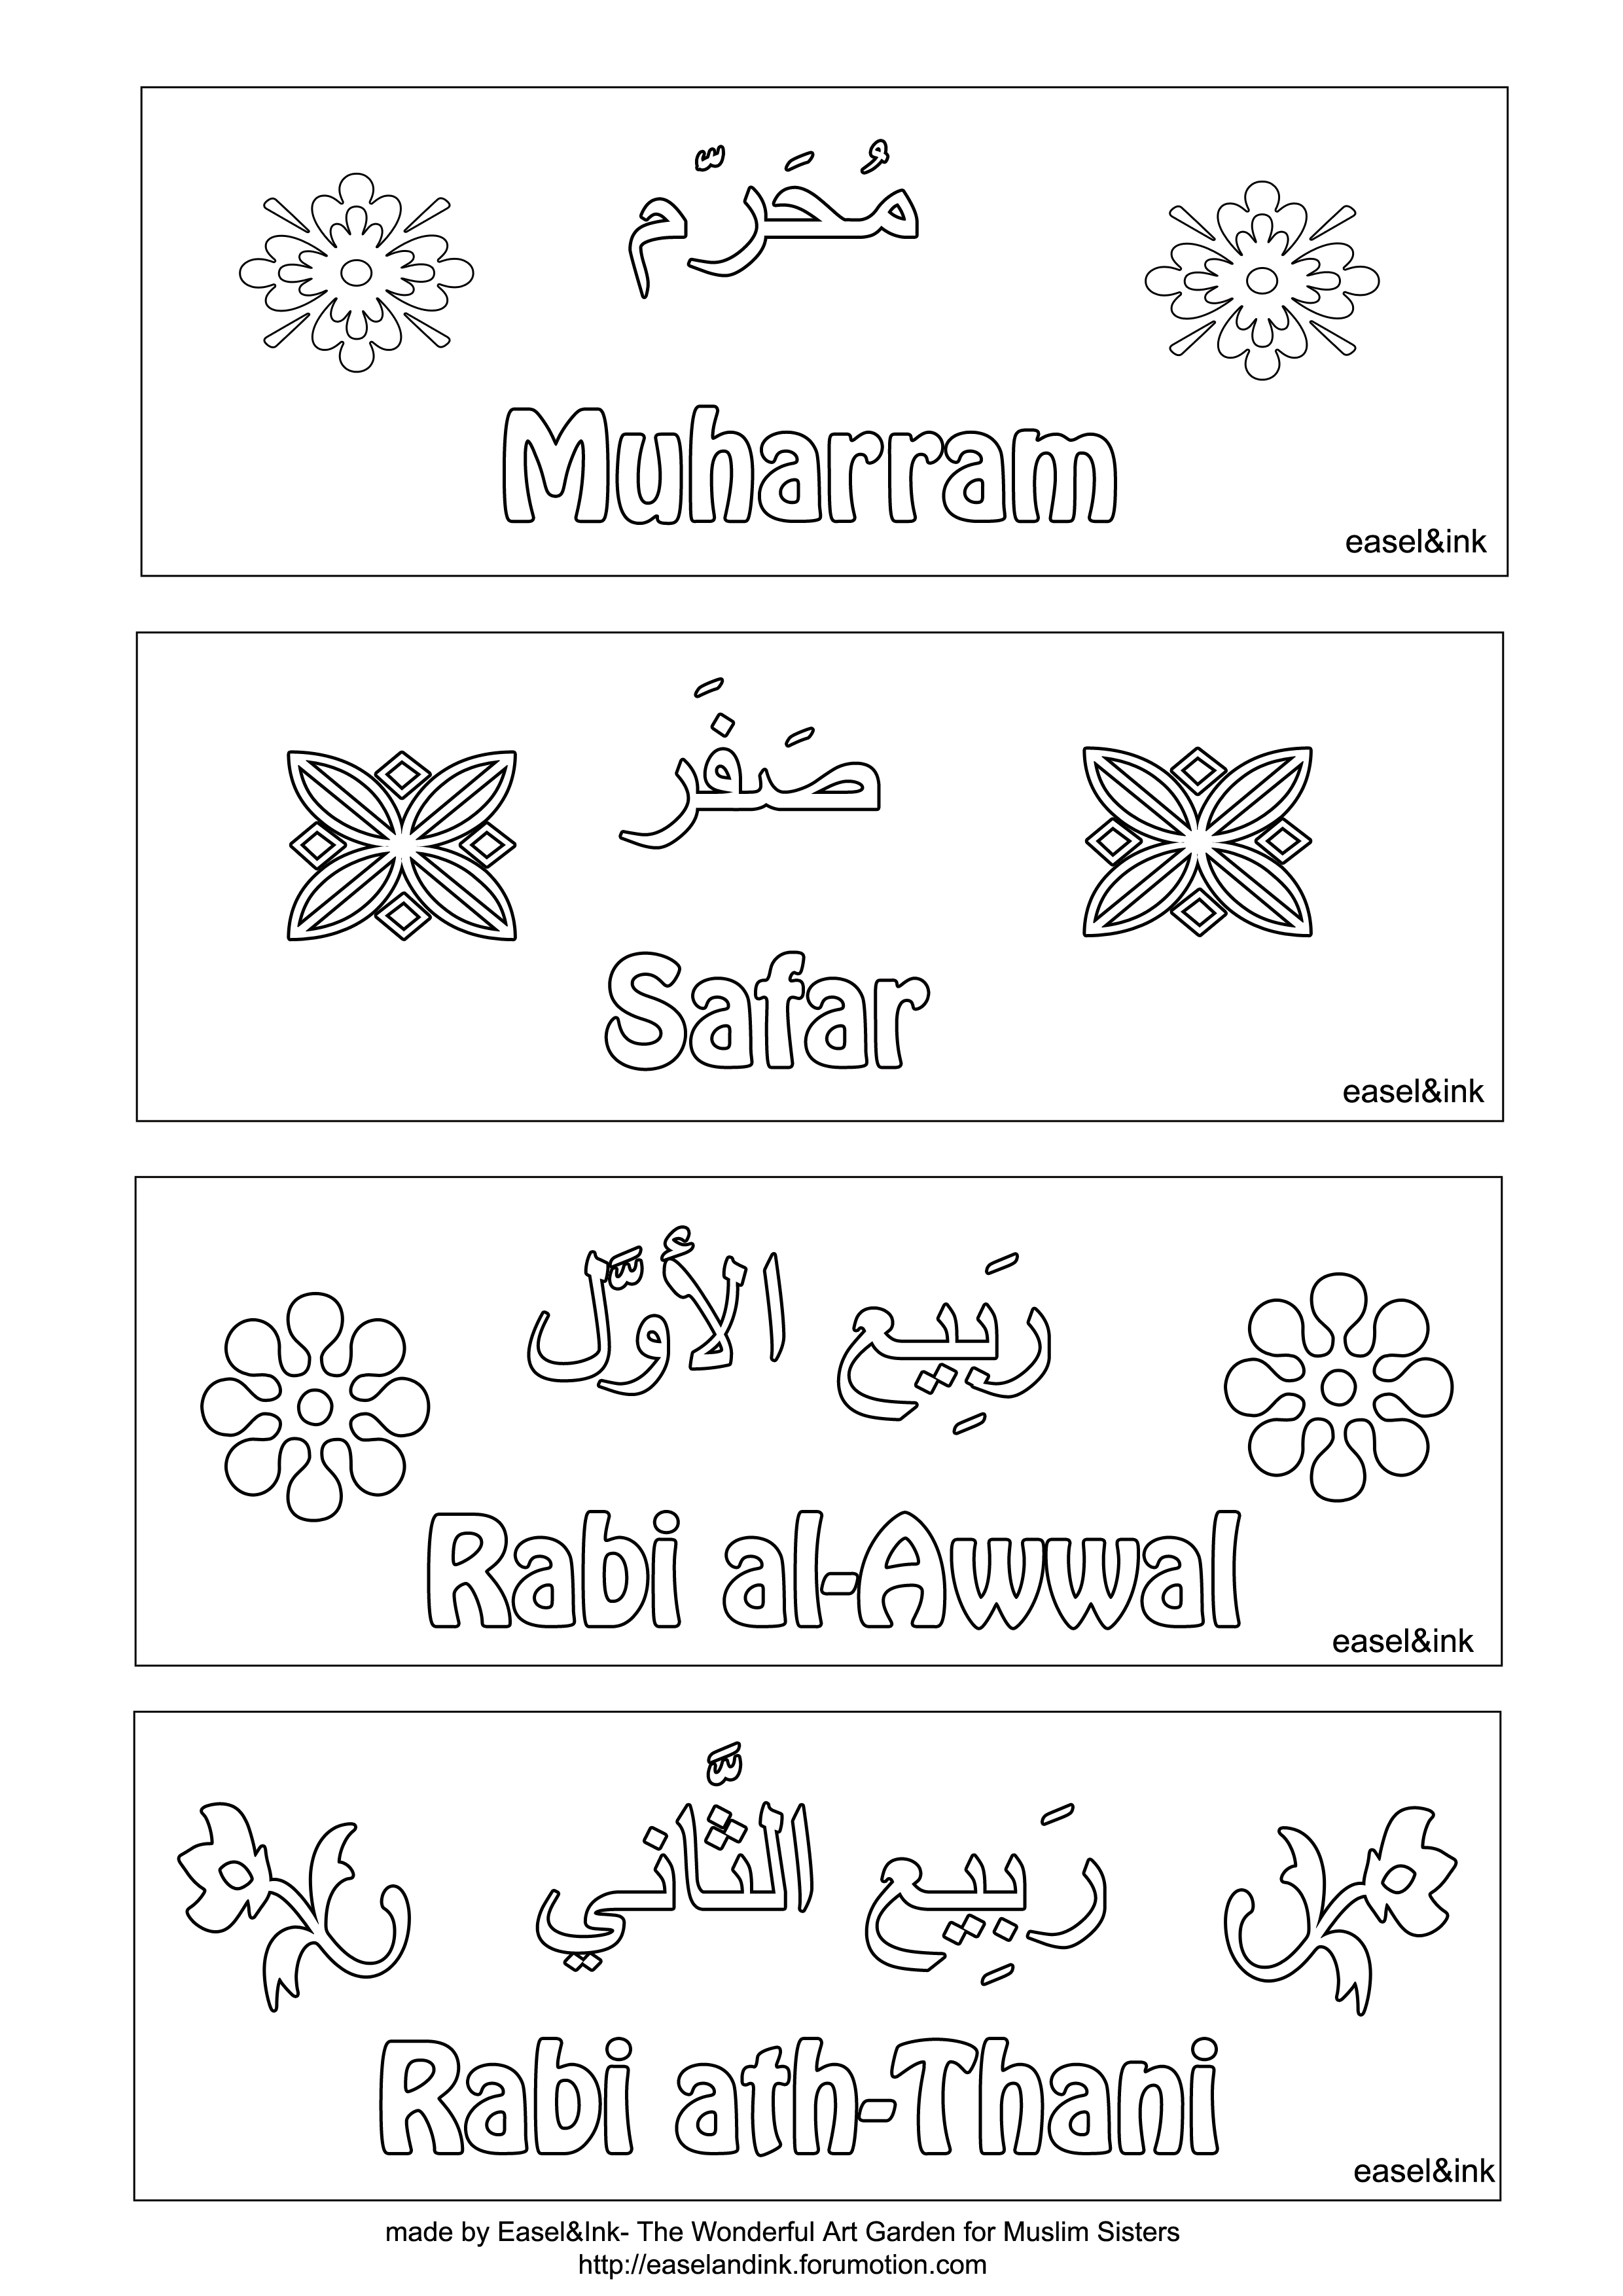 Islamic Months In English And Arabic 1 Muharram 2